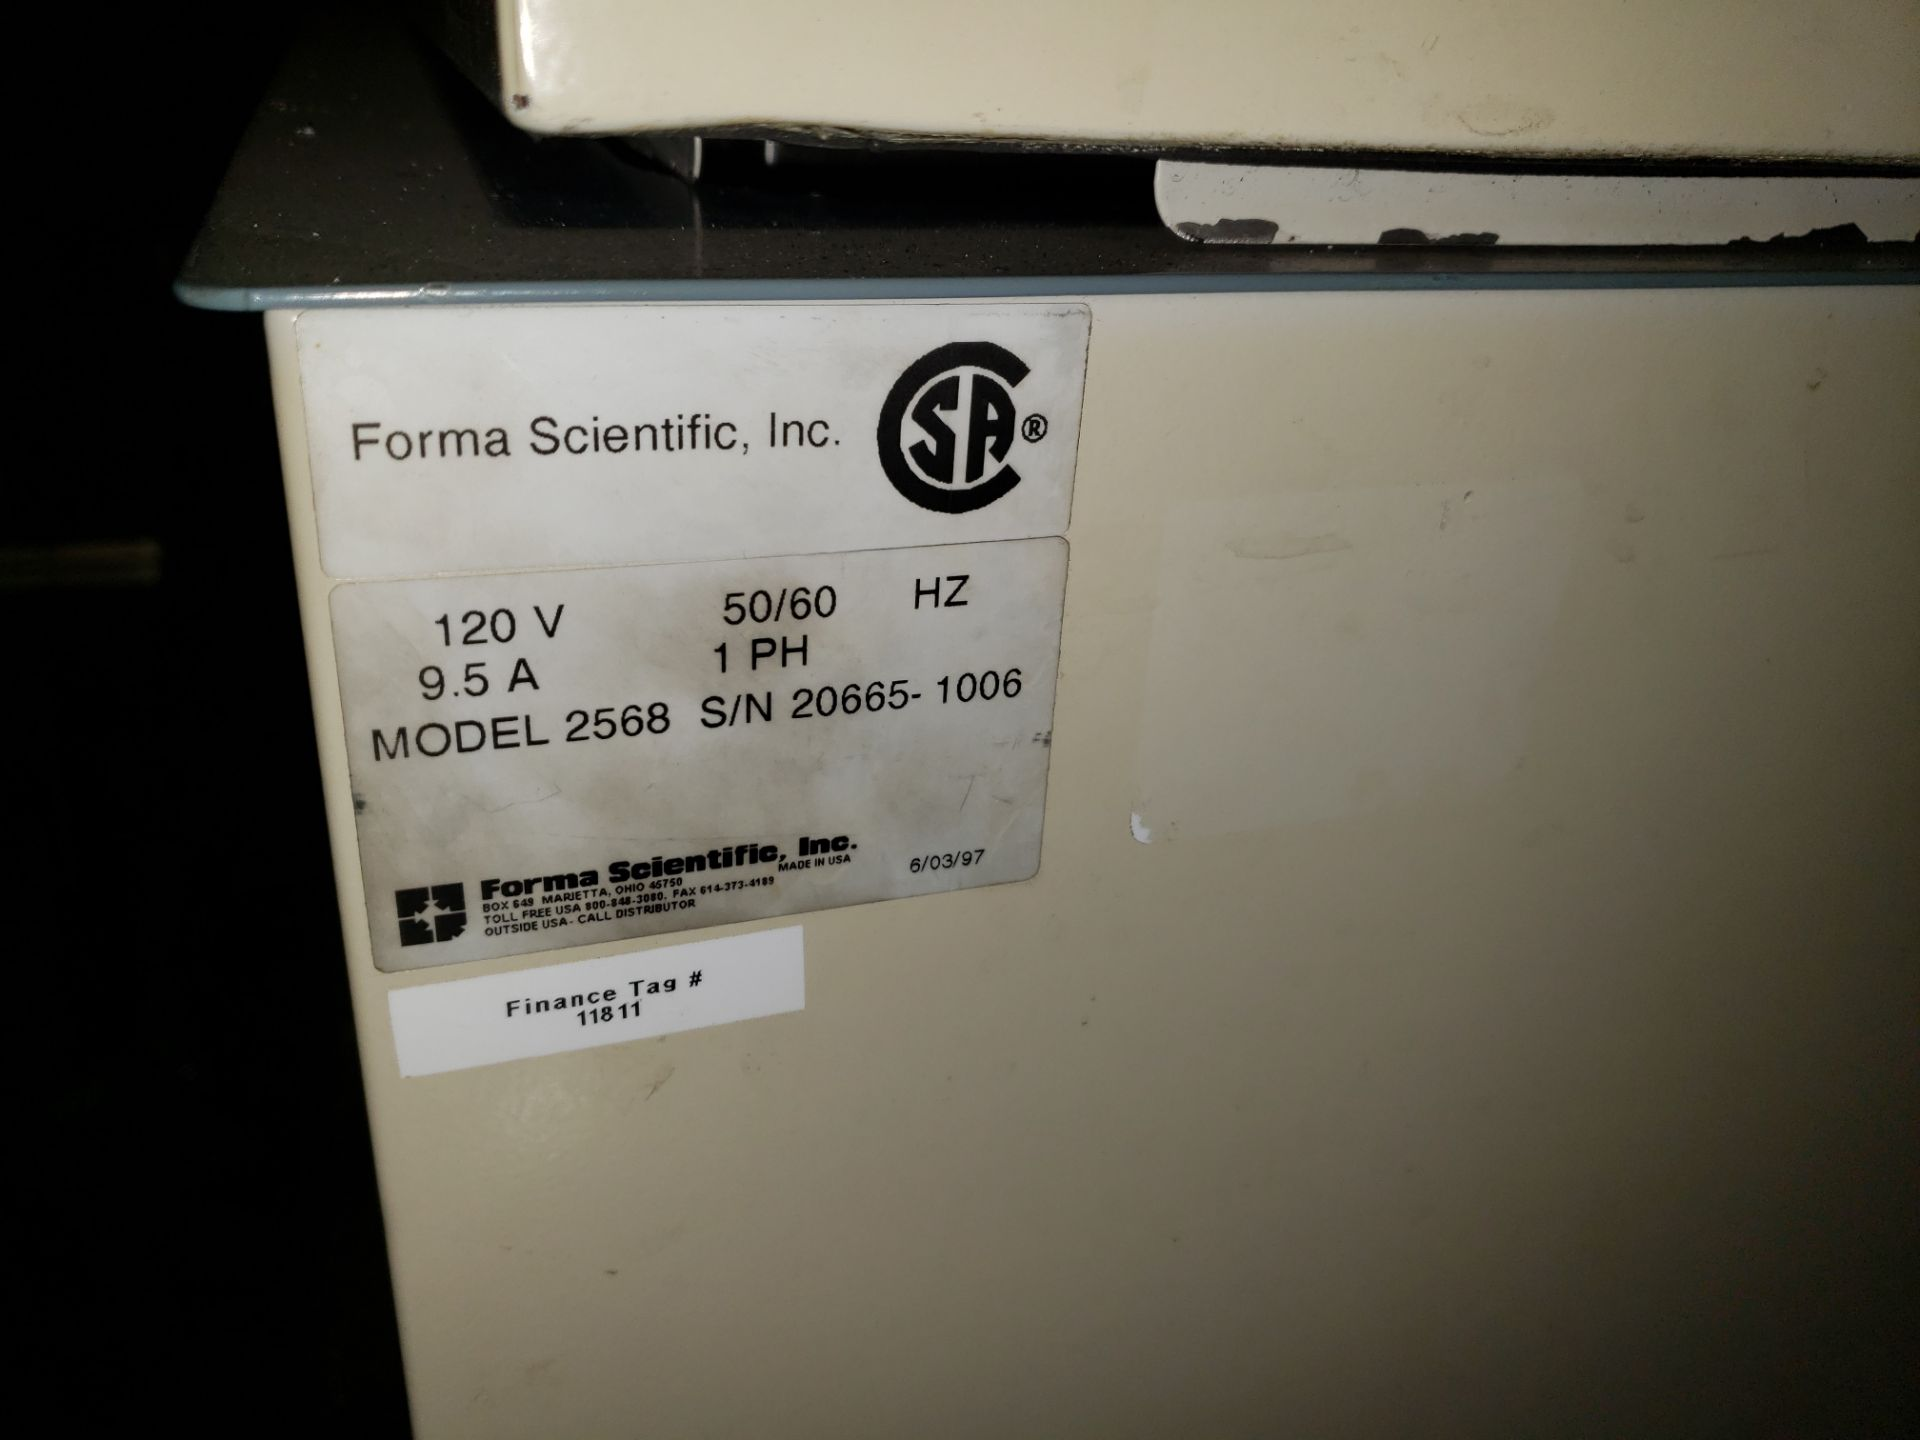 Lot 67 - Forma Scientific model 2568 heated water bath.